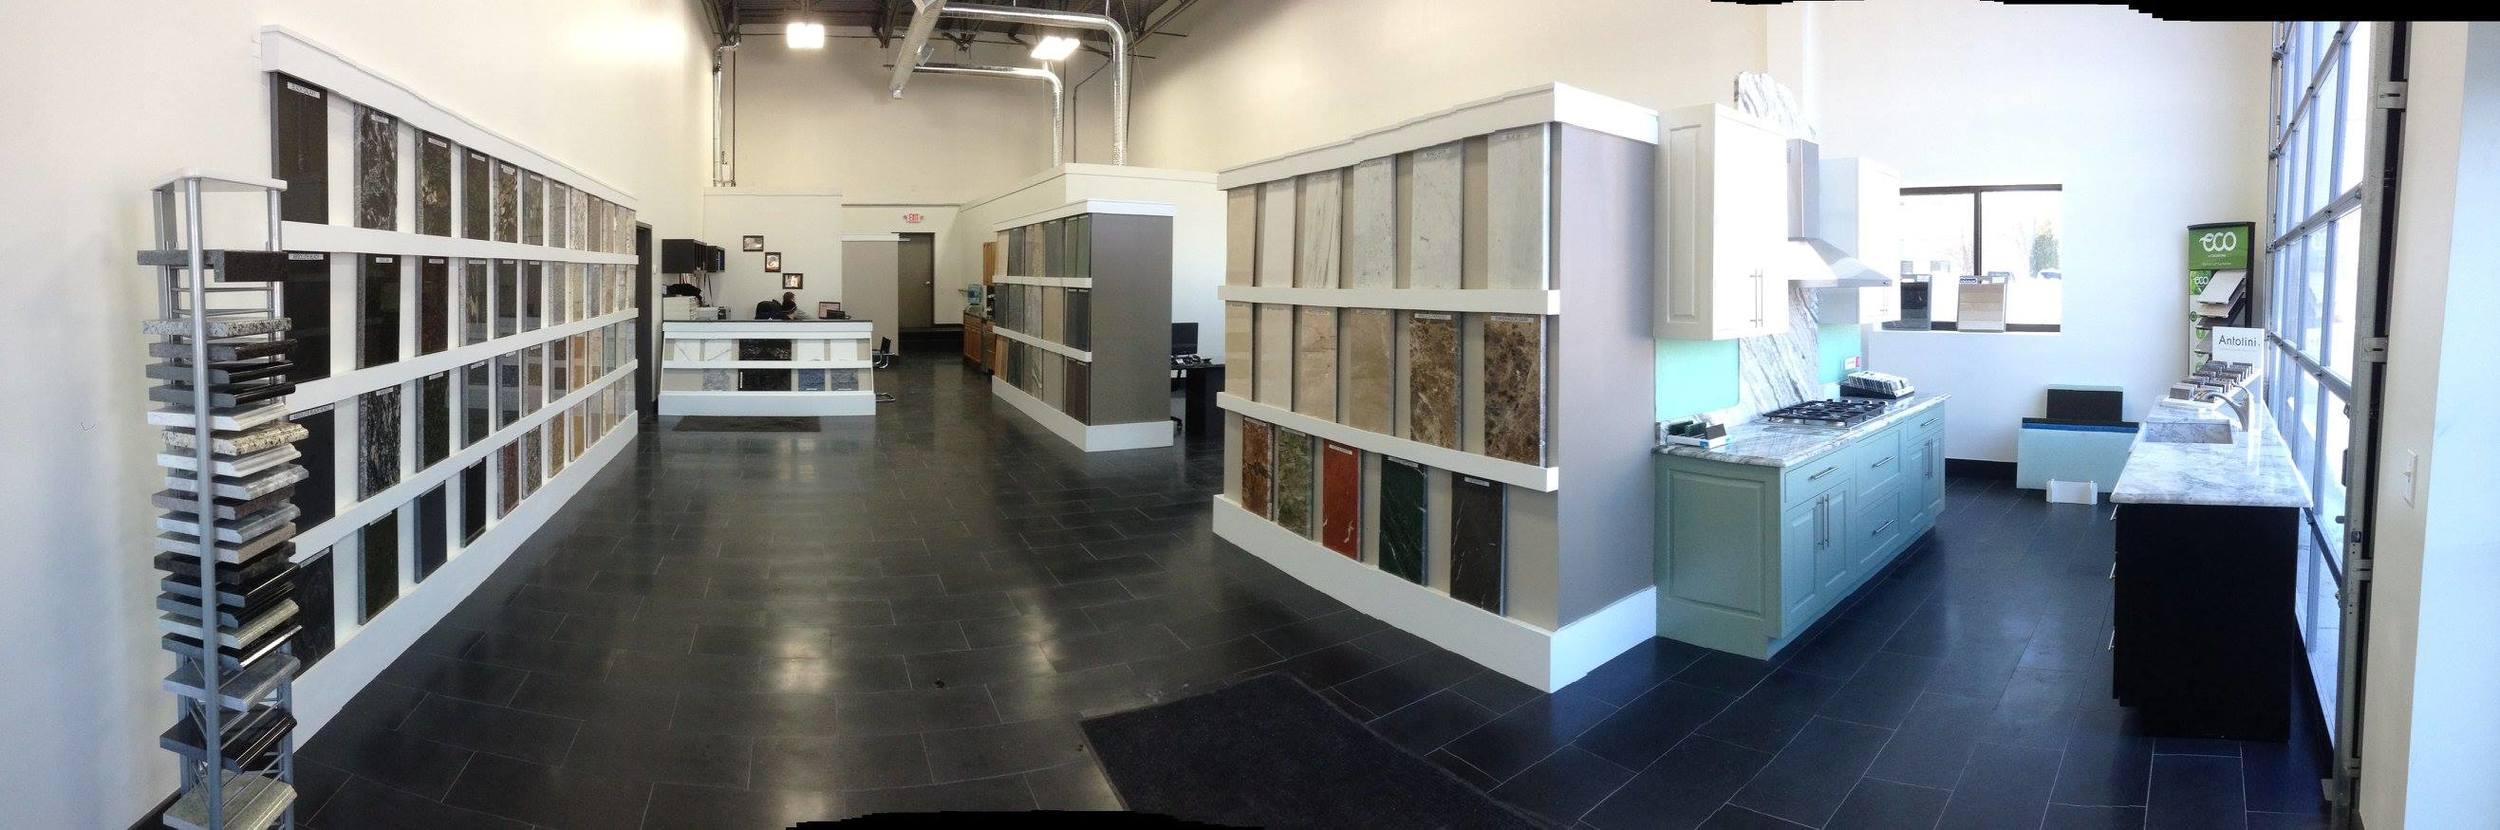 Showroom Panorama.jpg